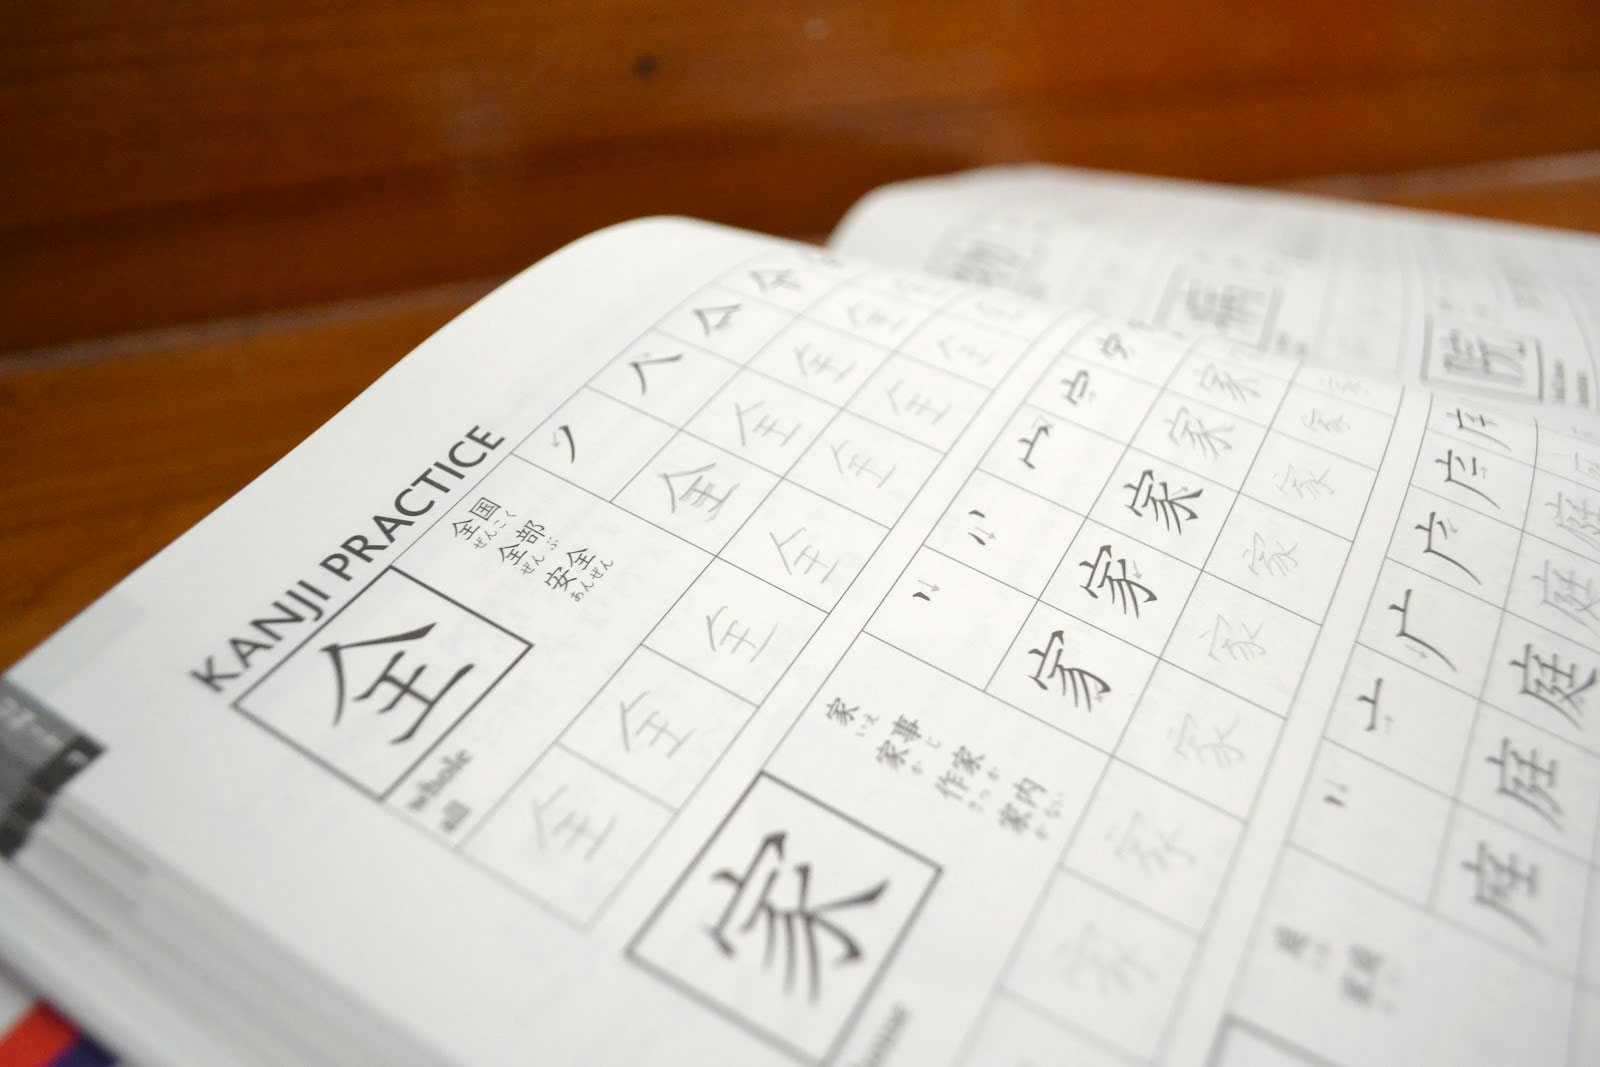 What's the best website to learn Japanese? - Quora